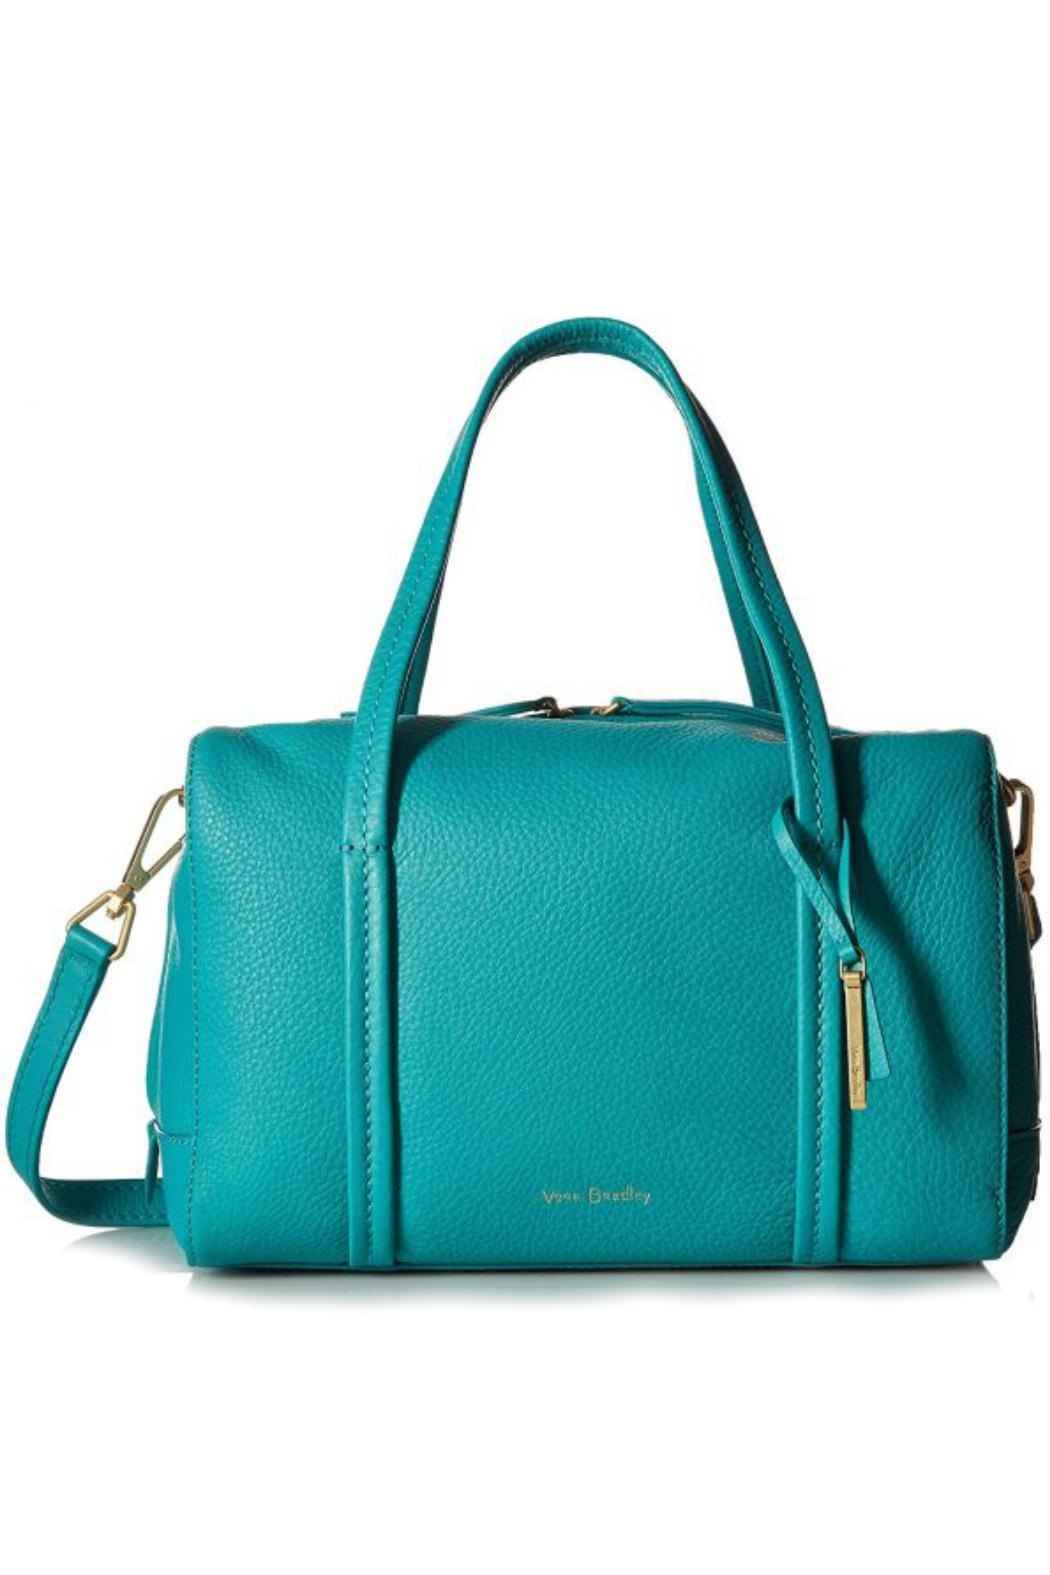 Vera Bradley Turquoise Sea Leather - Front Cropped Image